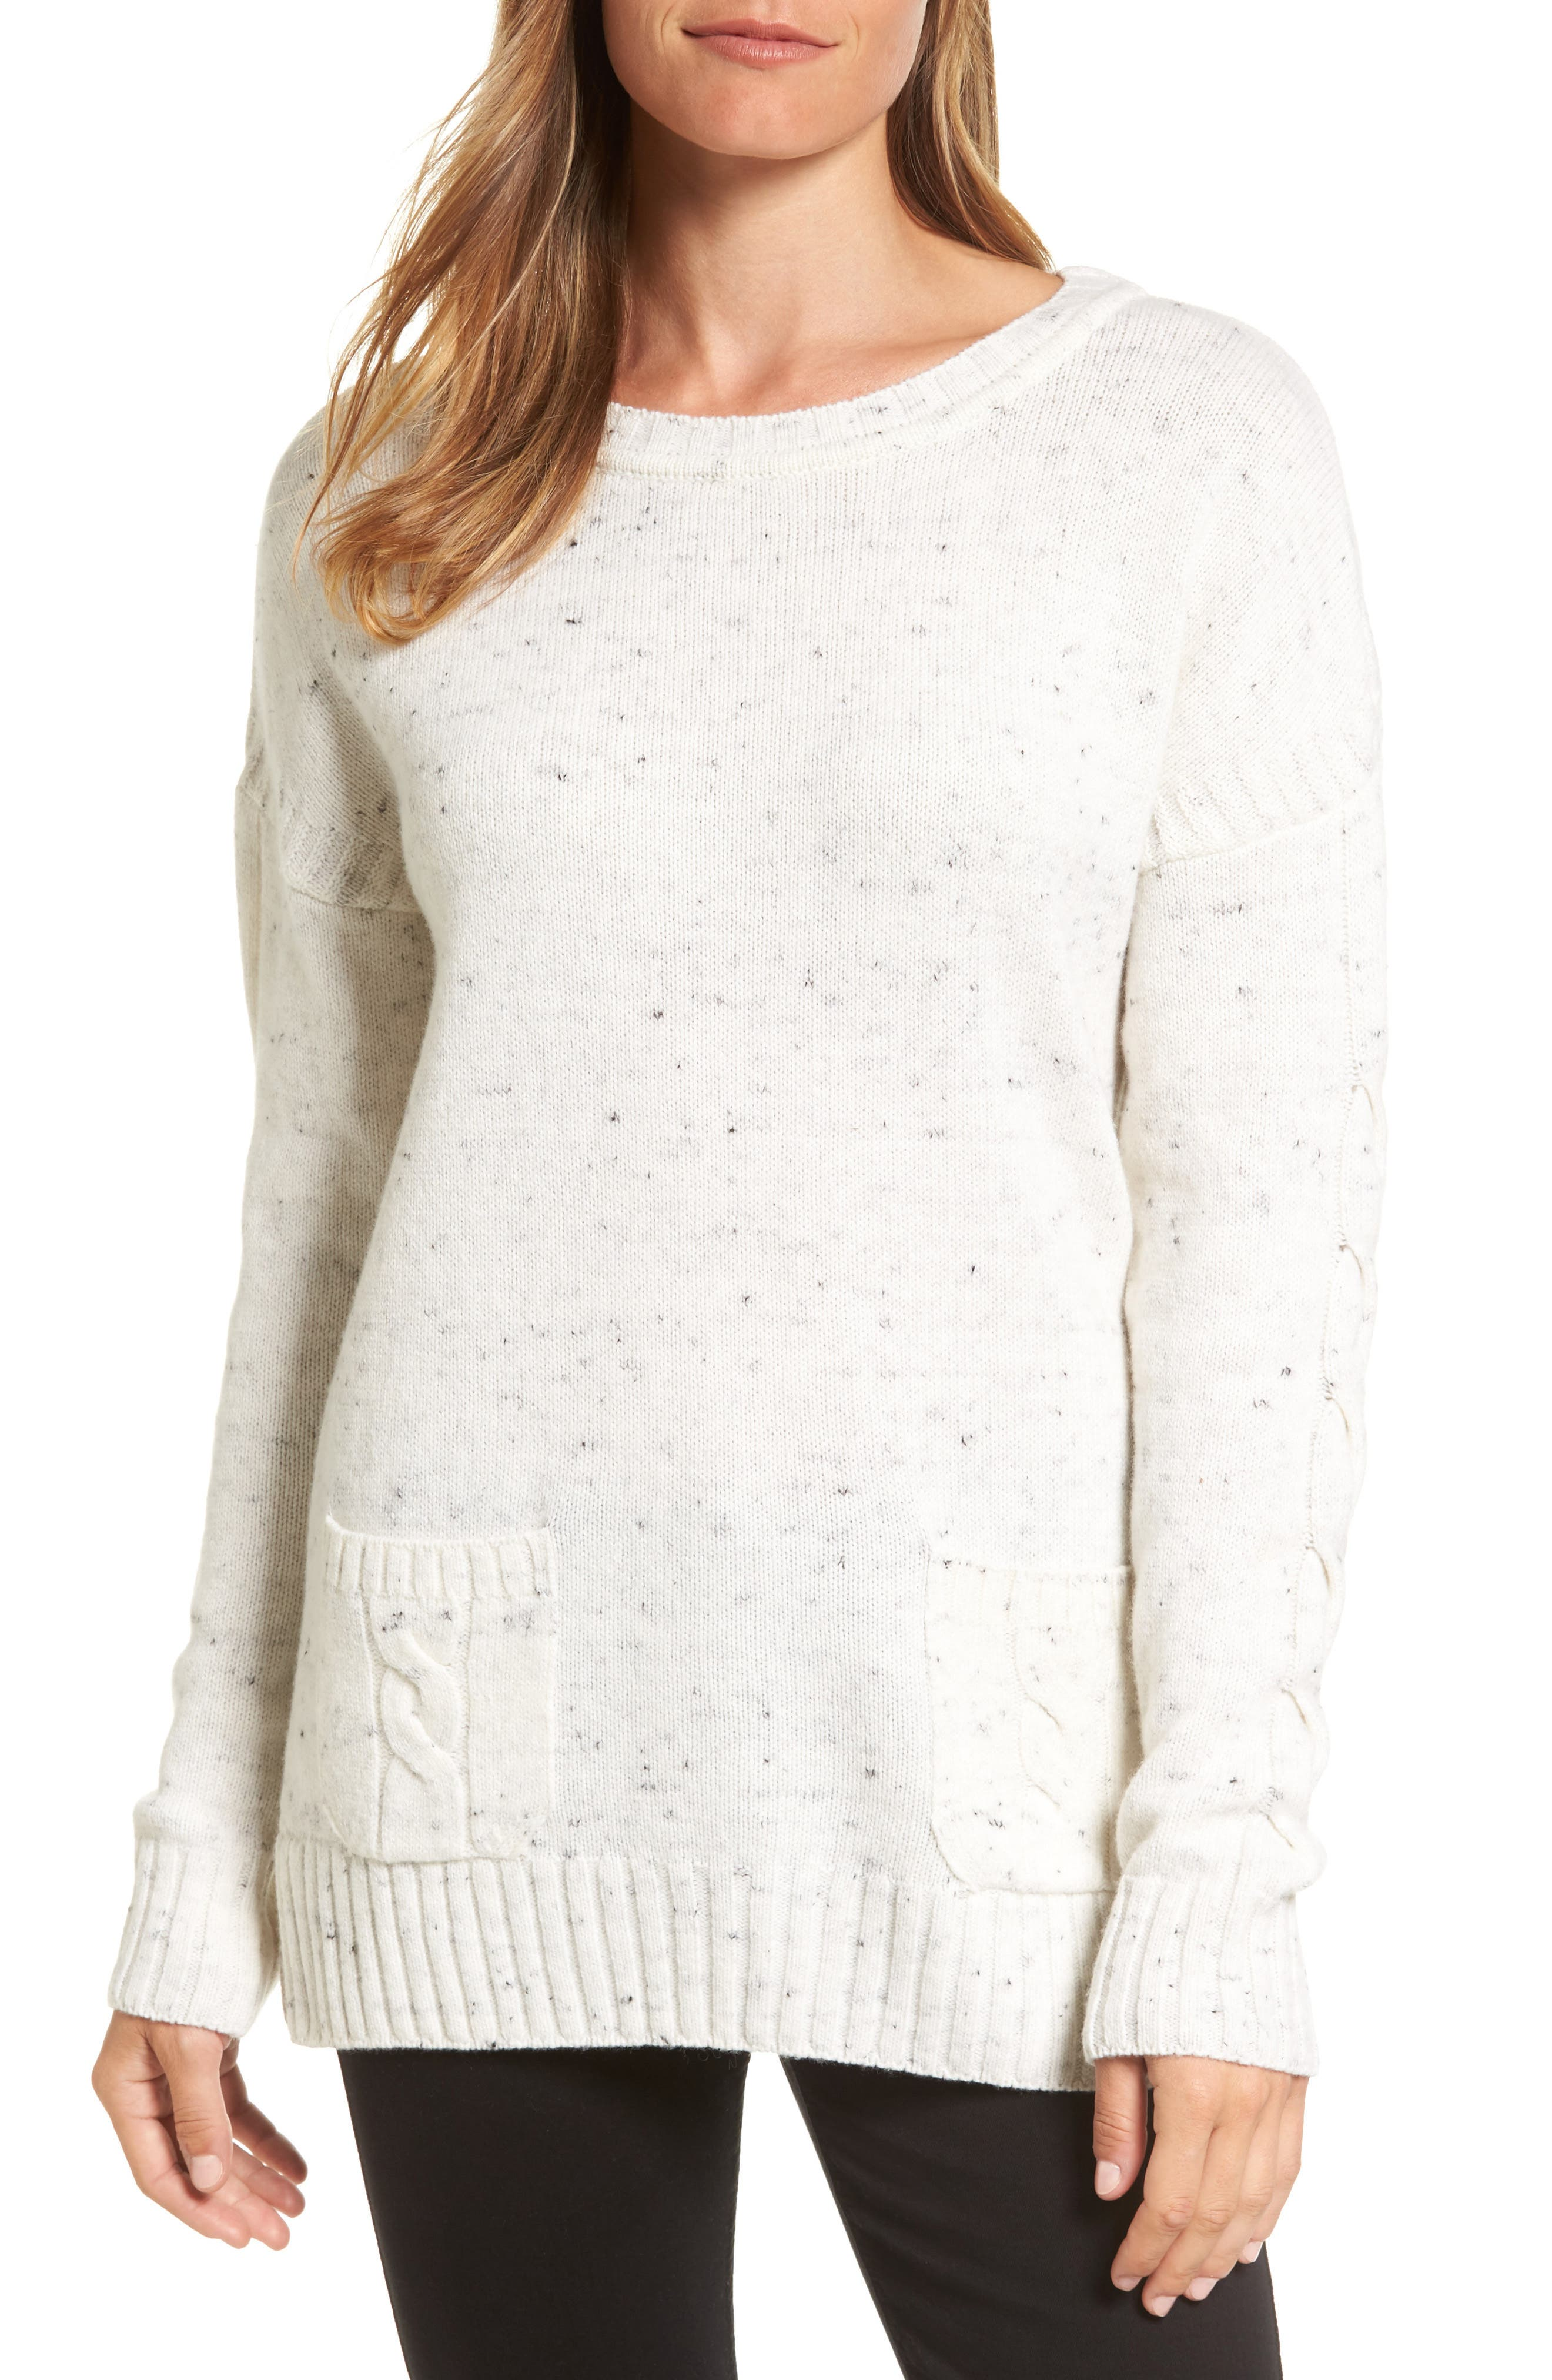 Barbour Priory Wool Blend Tunic Sweater